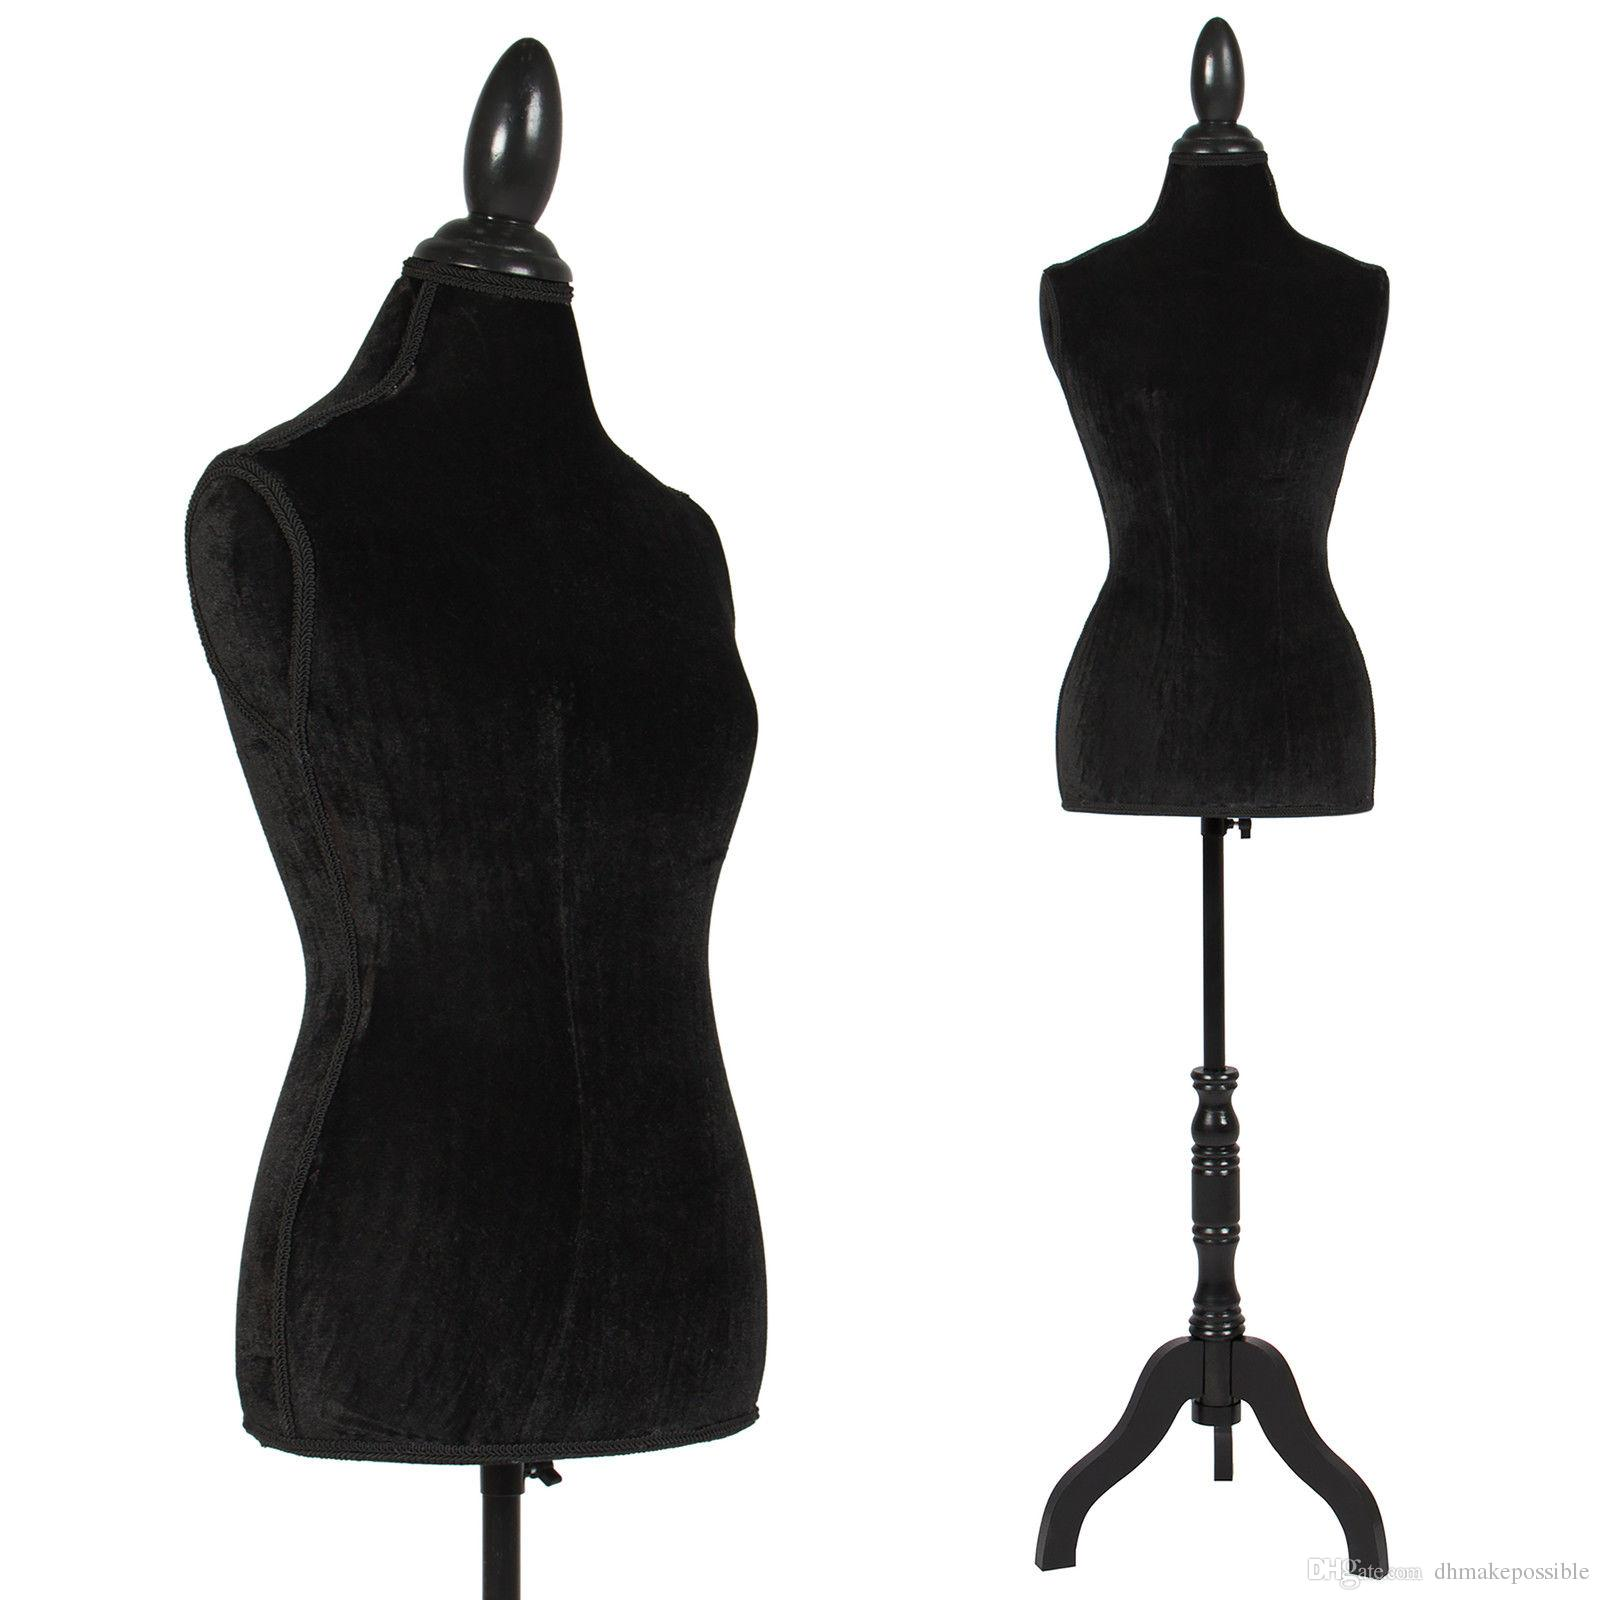 White Female Mannequin Torso Dress Form Display W White Tripod